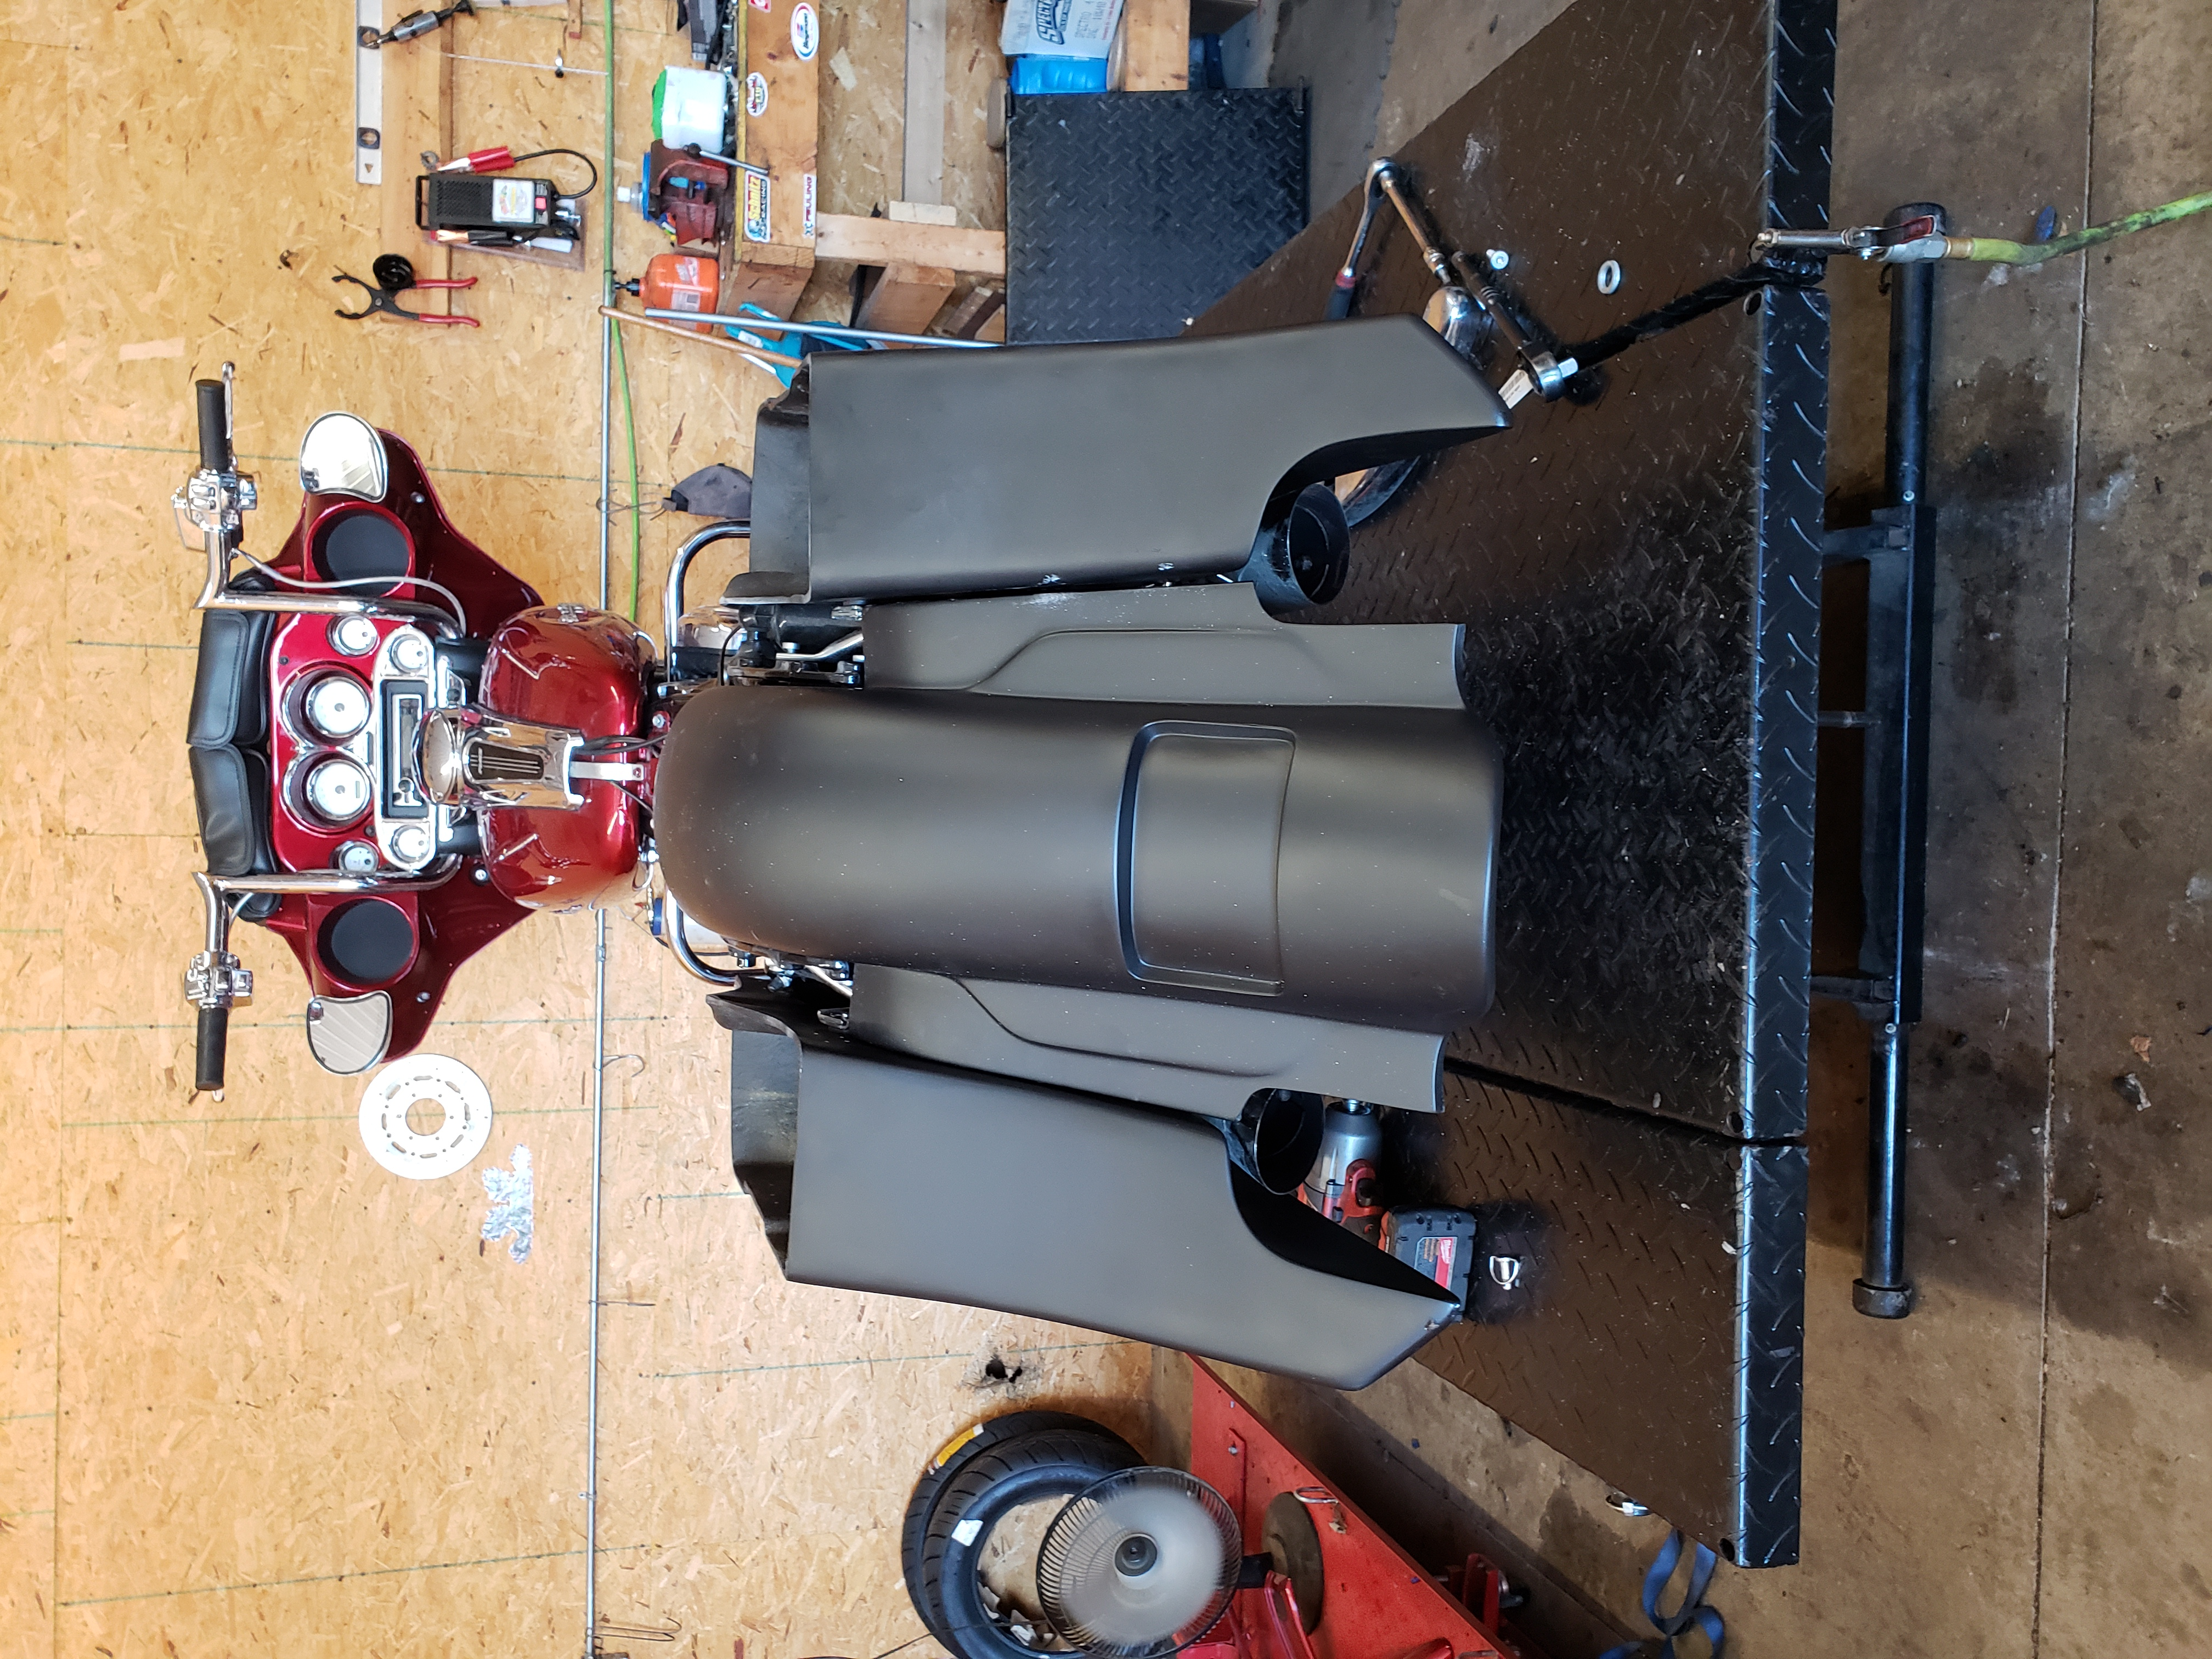 2012 Street Glide Bagger Project